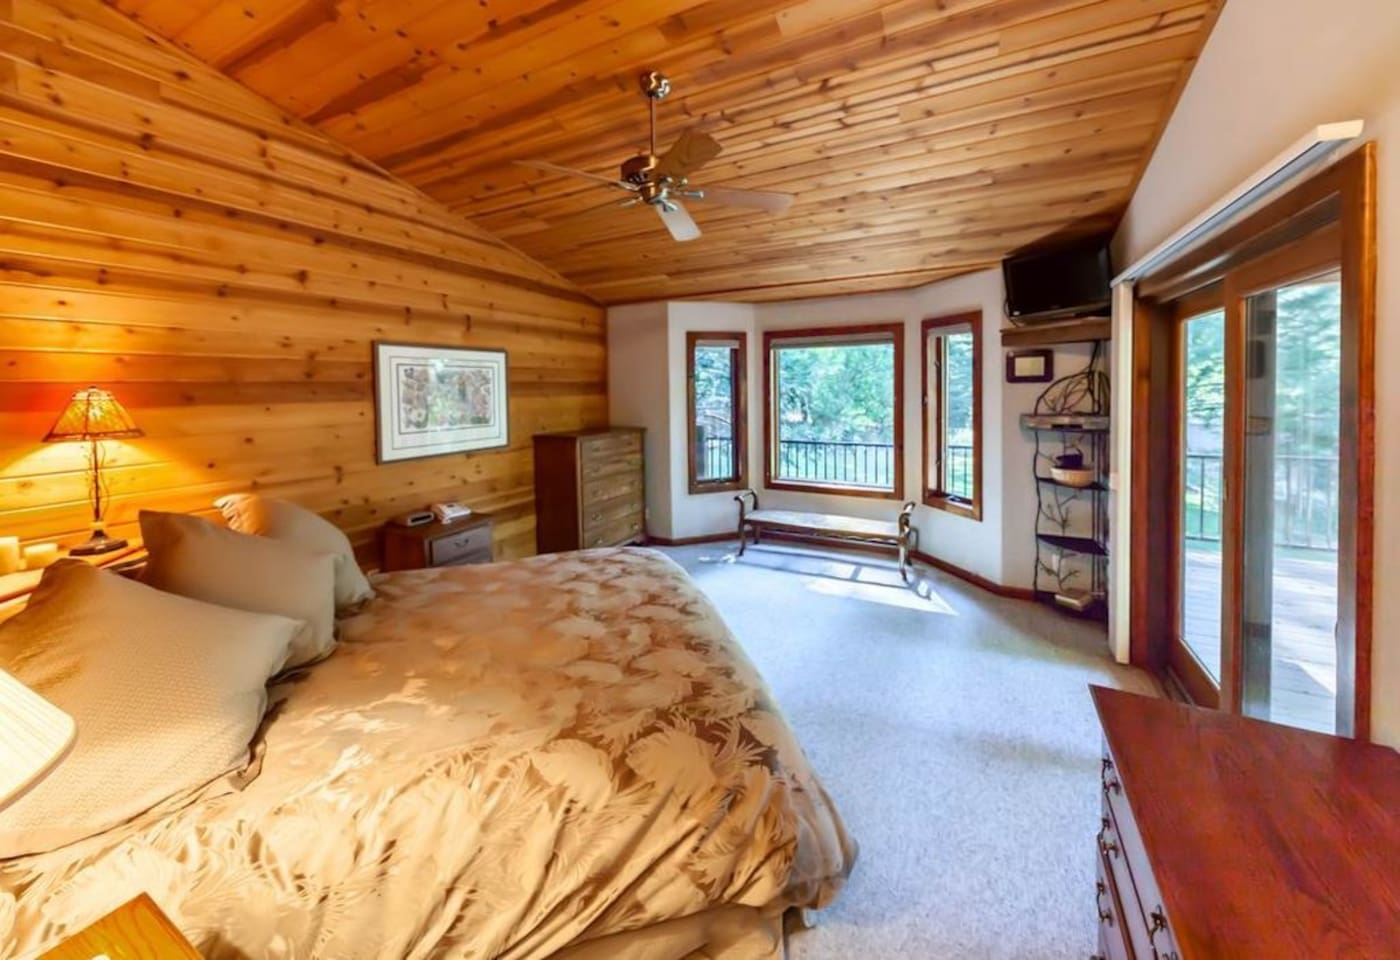 """At the """"Hummingbird Suite"""", in beautiful, historic Graeagle, guests enjoy nesting in a comfortable, cozy Master Suite with private deck and entrance."""